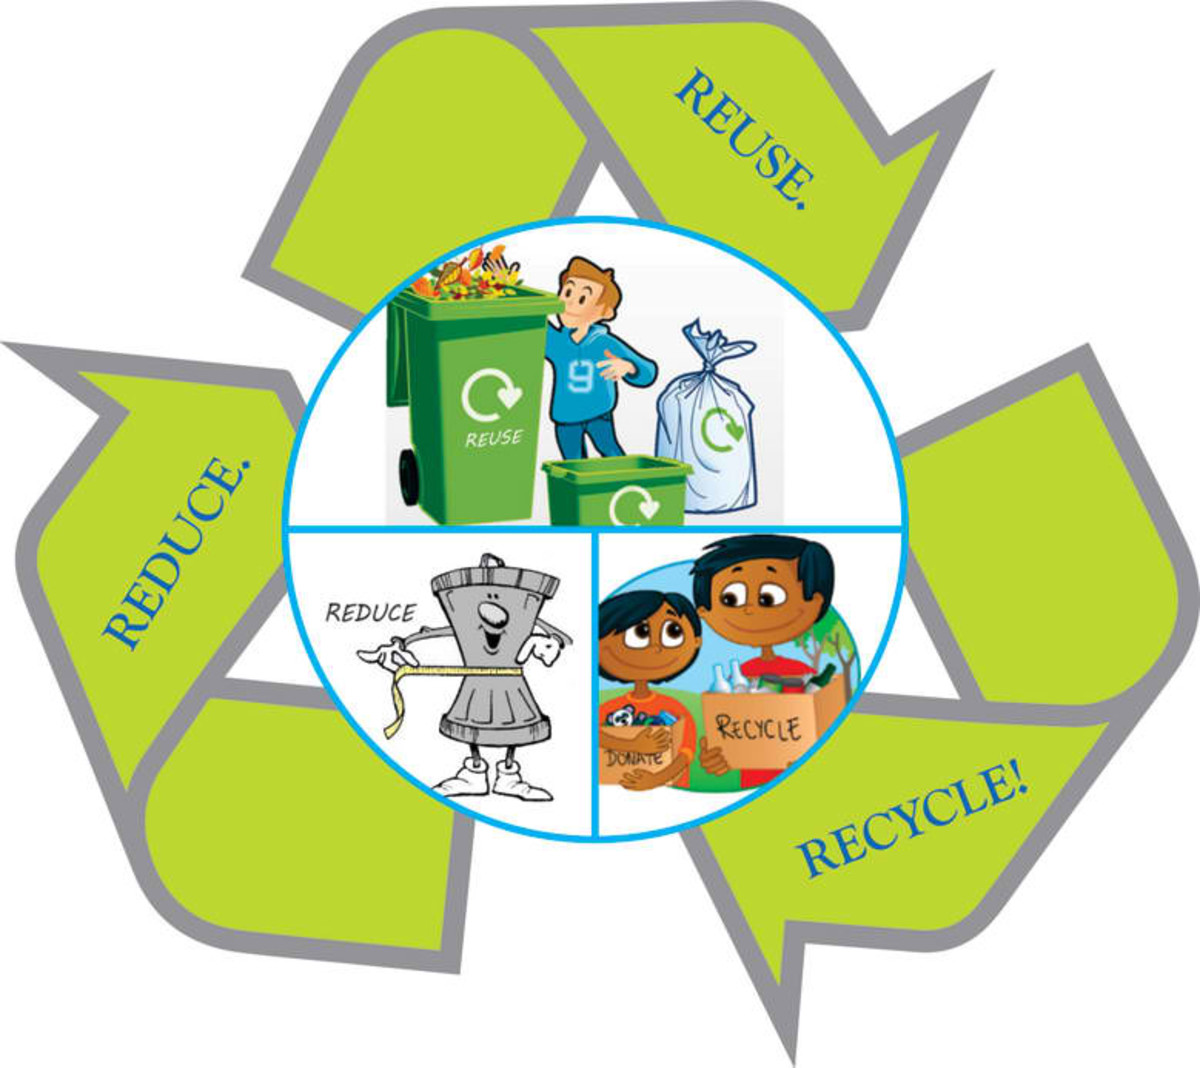 To send less trash to polluting dumps through adapting the 3Rs of Waste Management